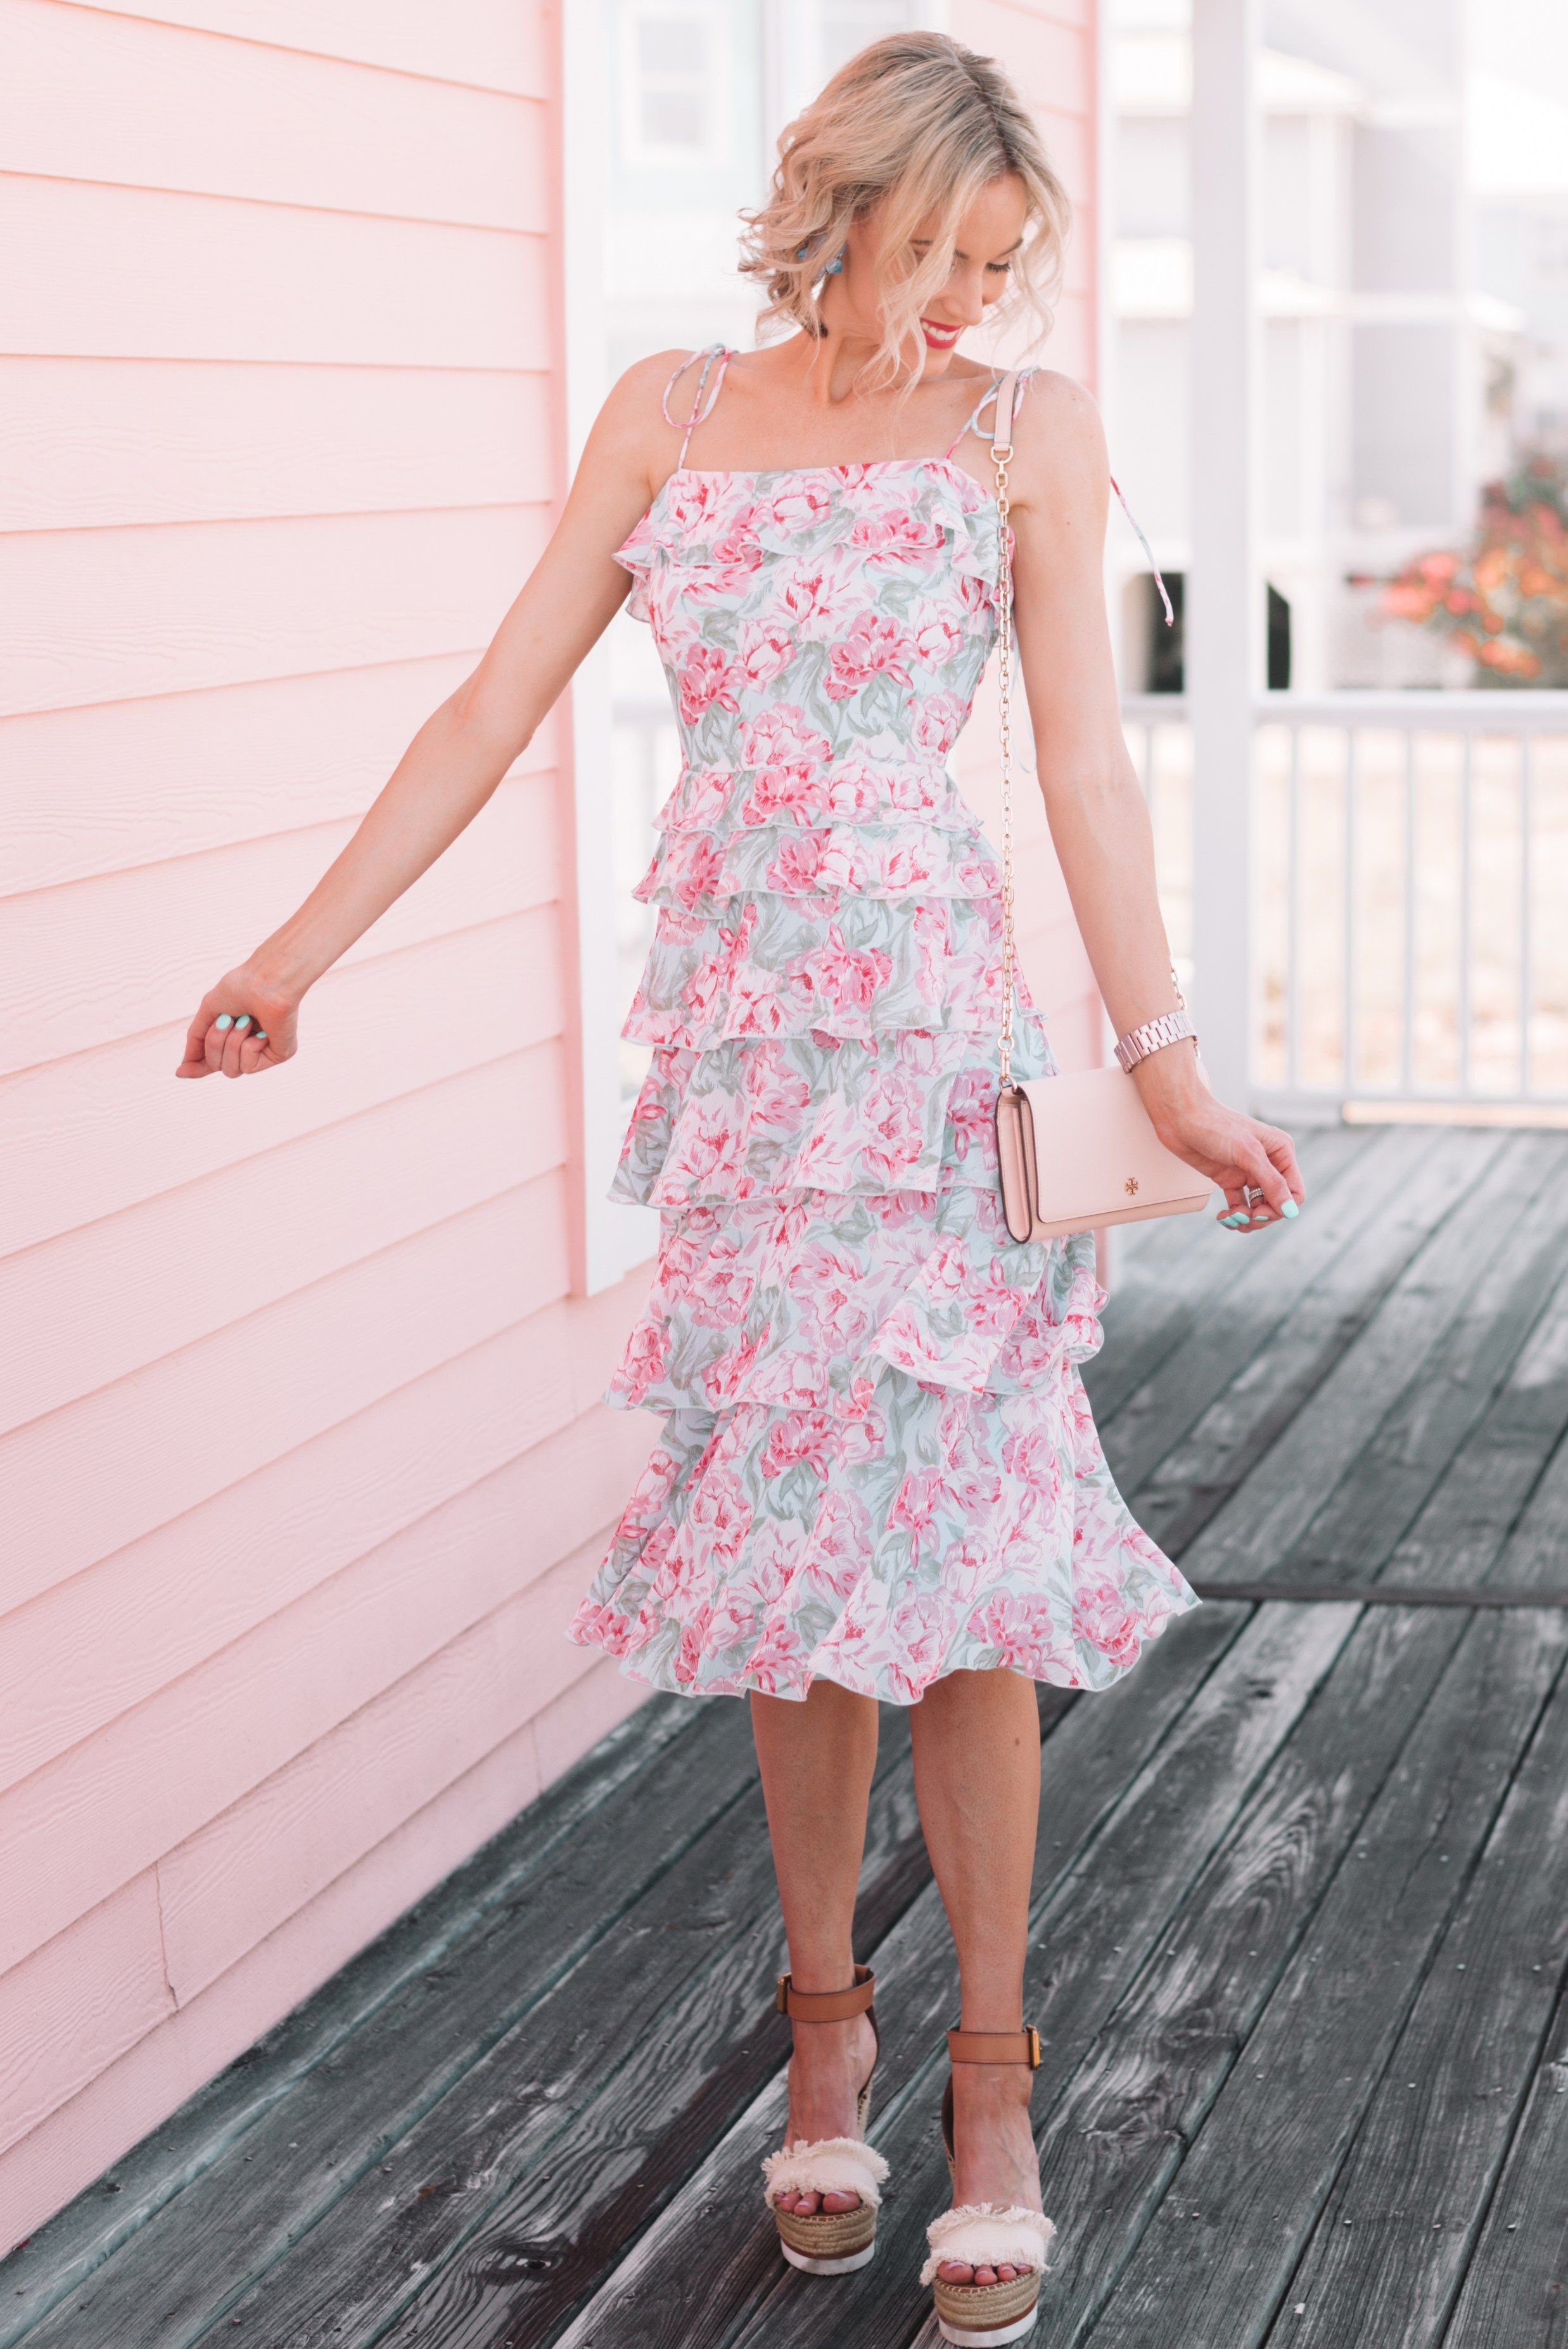 What To Wear To A Summer Wedding Summer Wedding Guest Dress Ideas Wedding Guest Dress Summer Outdoor Wedding Guest Dresses Summer Wedding Outfit Guest [ 3707 x 2475 Pixel ]